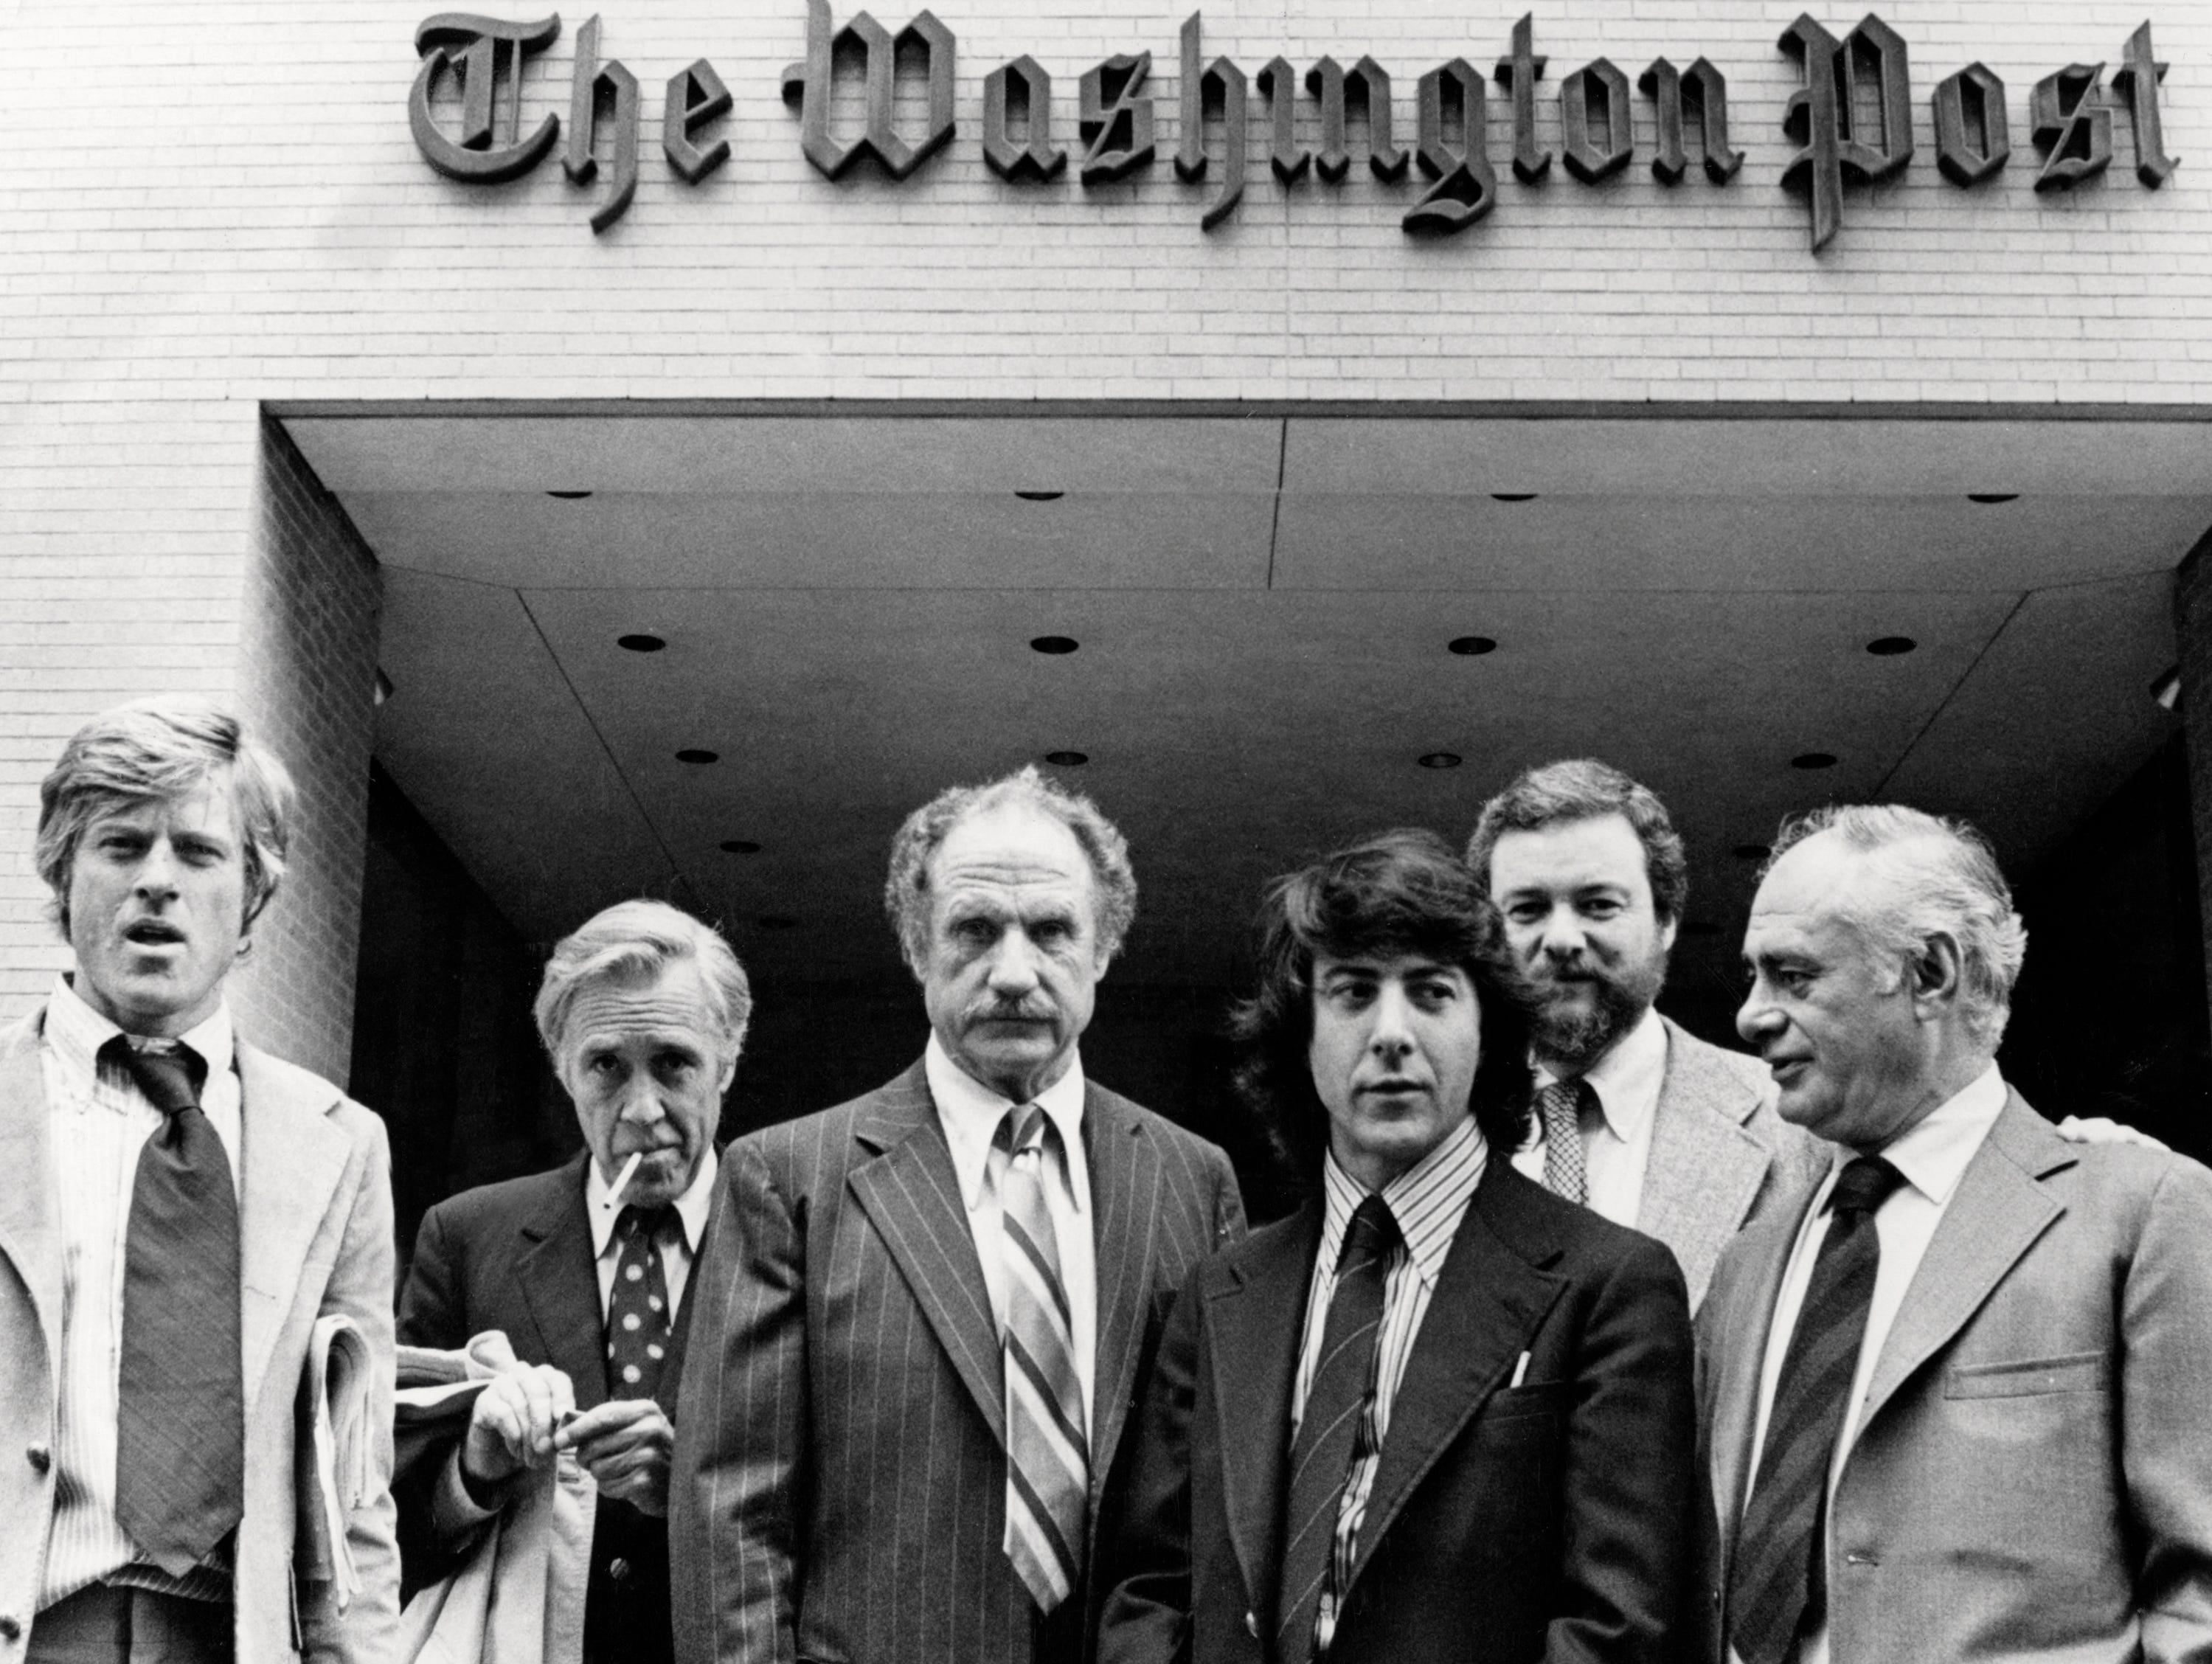 The director and cast members of 'All The President's Men' outside the offices of the Washington Post, 1976. Left to right: Robert Redford (who plays Bob Woodward in the film), Jason Robards (1922 - 2000, plays Ben Bradlee), Jack Warden (1920 - 2006, plays Harry Rosenfeld), Dustin Hoffman (plays Carl Bernstein), director Alan J. Pakula (1928 - 1998) and Martin Balsam (1919 - 1996, plays Howard Simons).